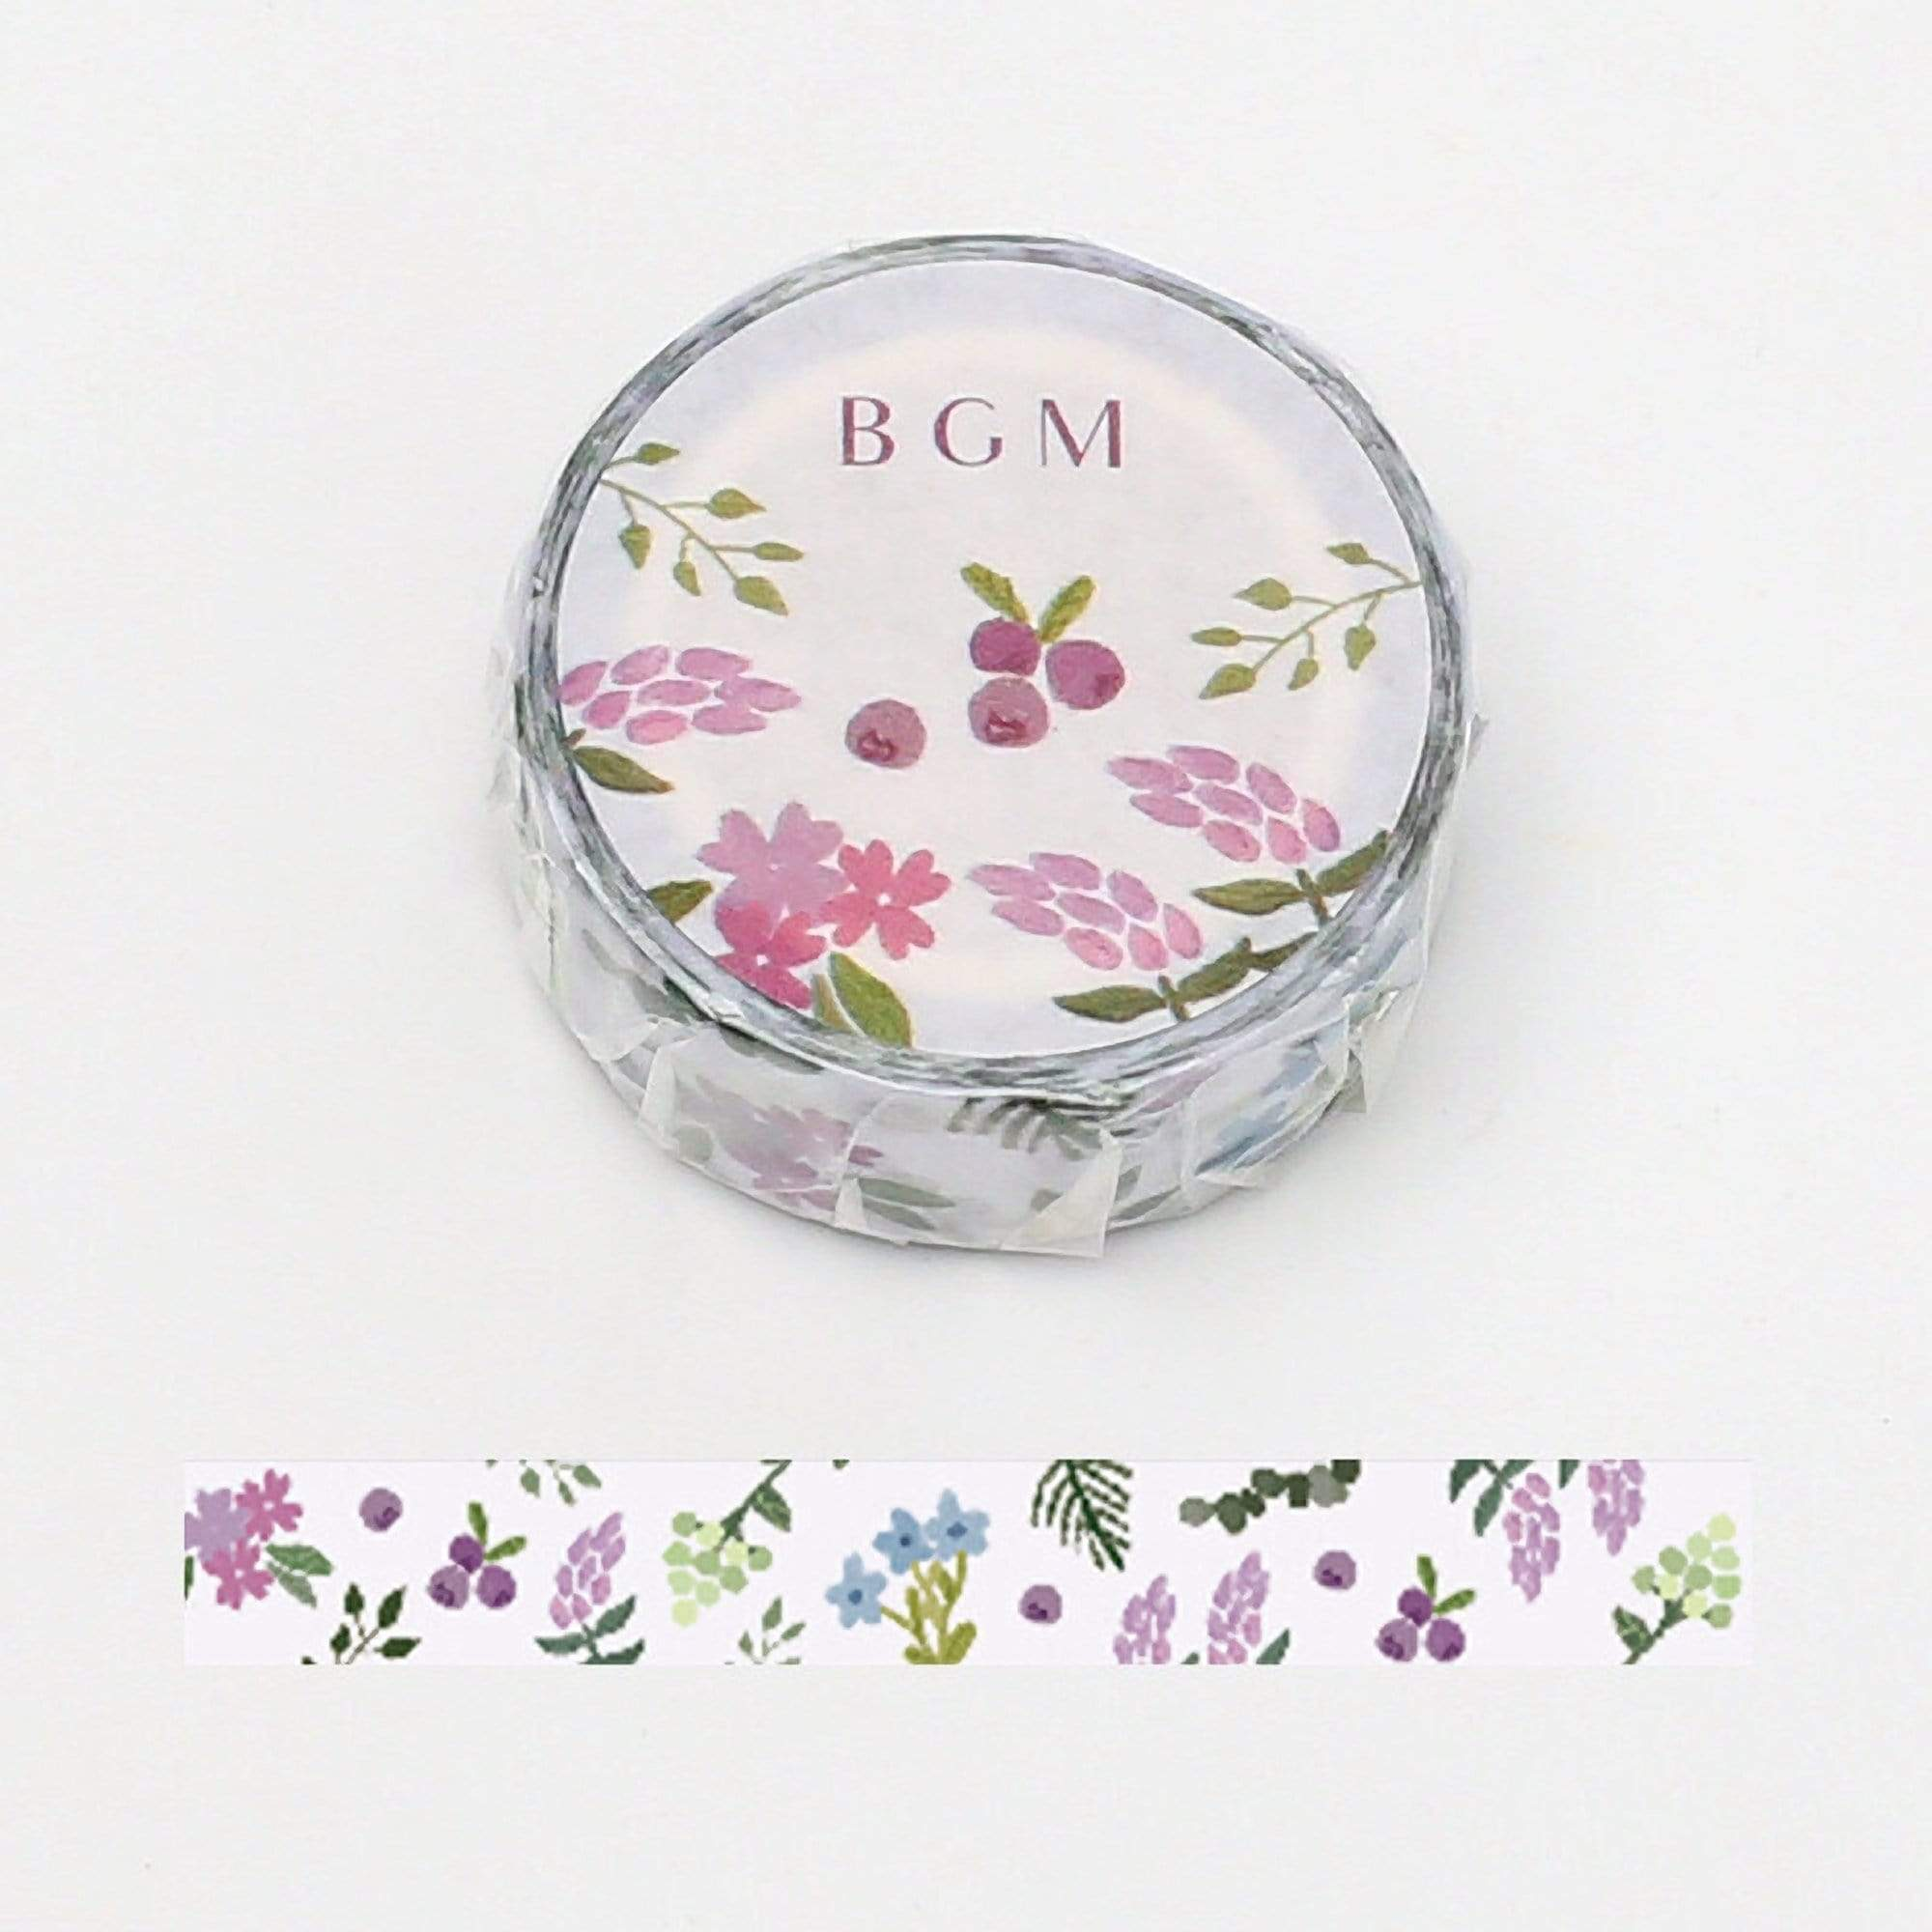 BGM Flower Garden Light Washi Tape - The Stationery Life!